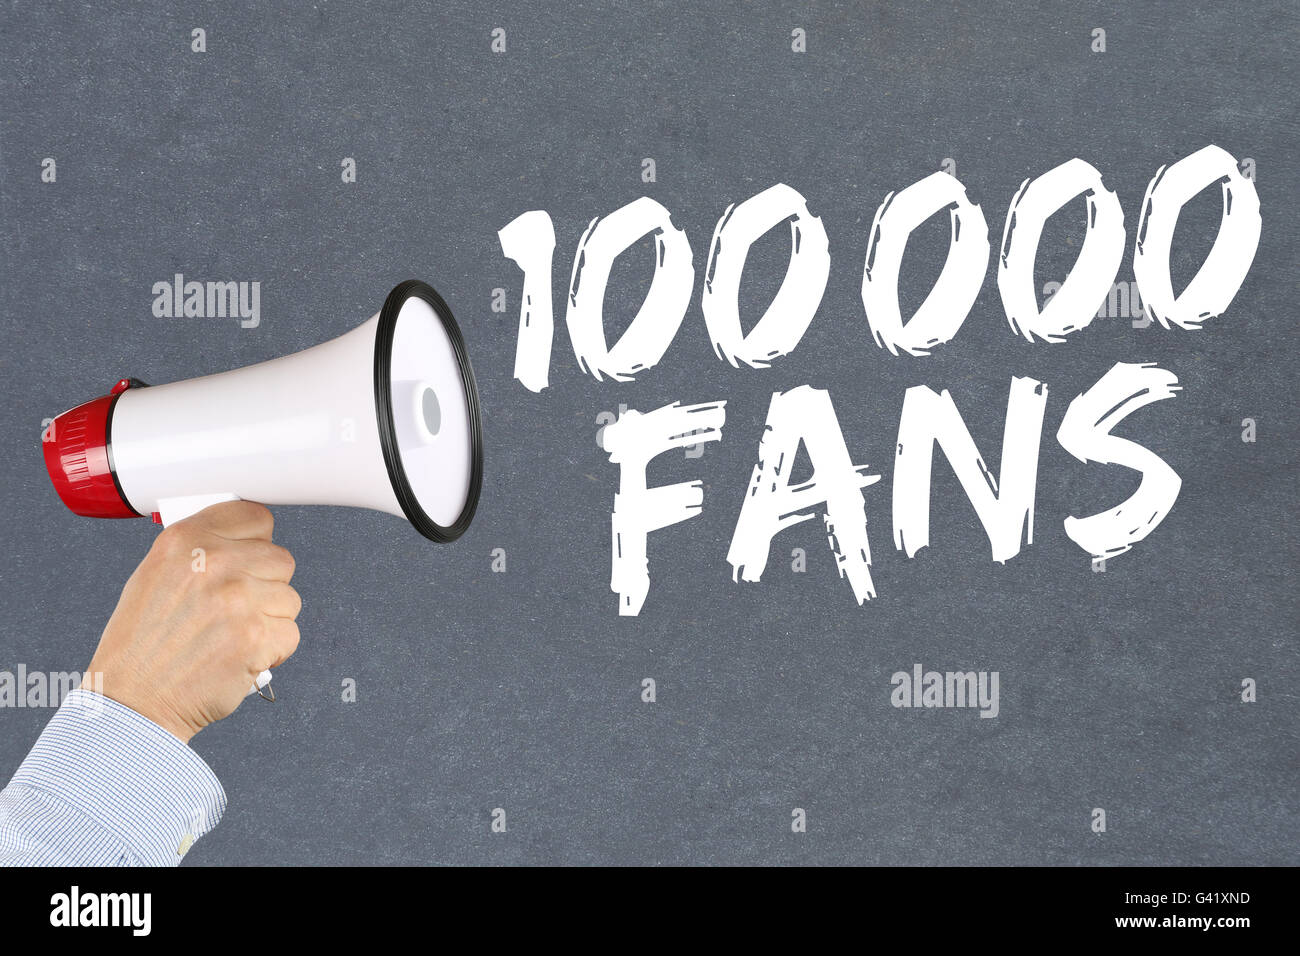 100000 fans likes social networking media hand with megaphone - Stock Image